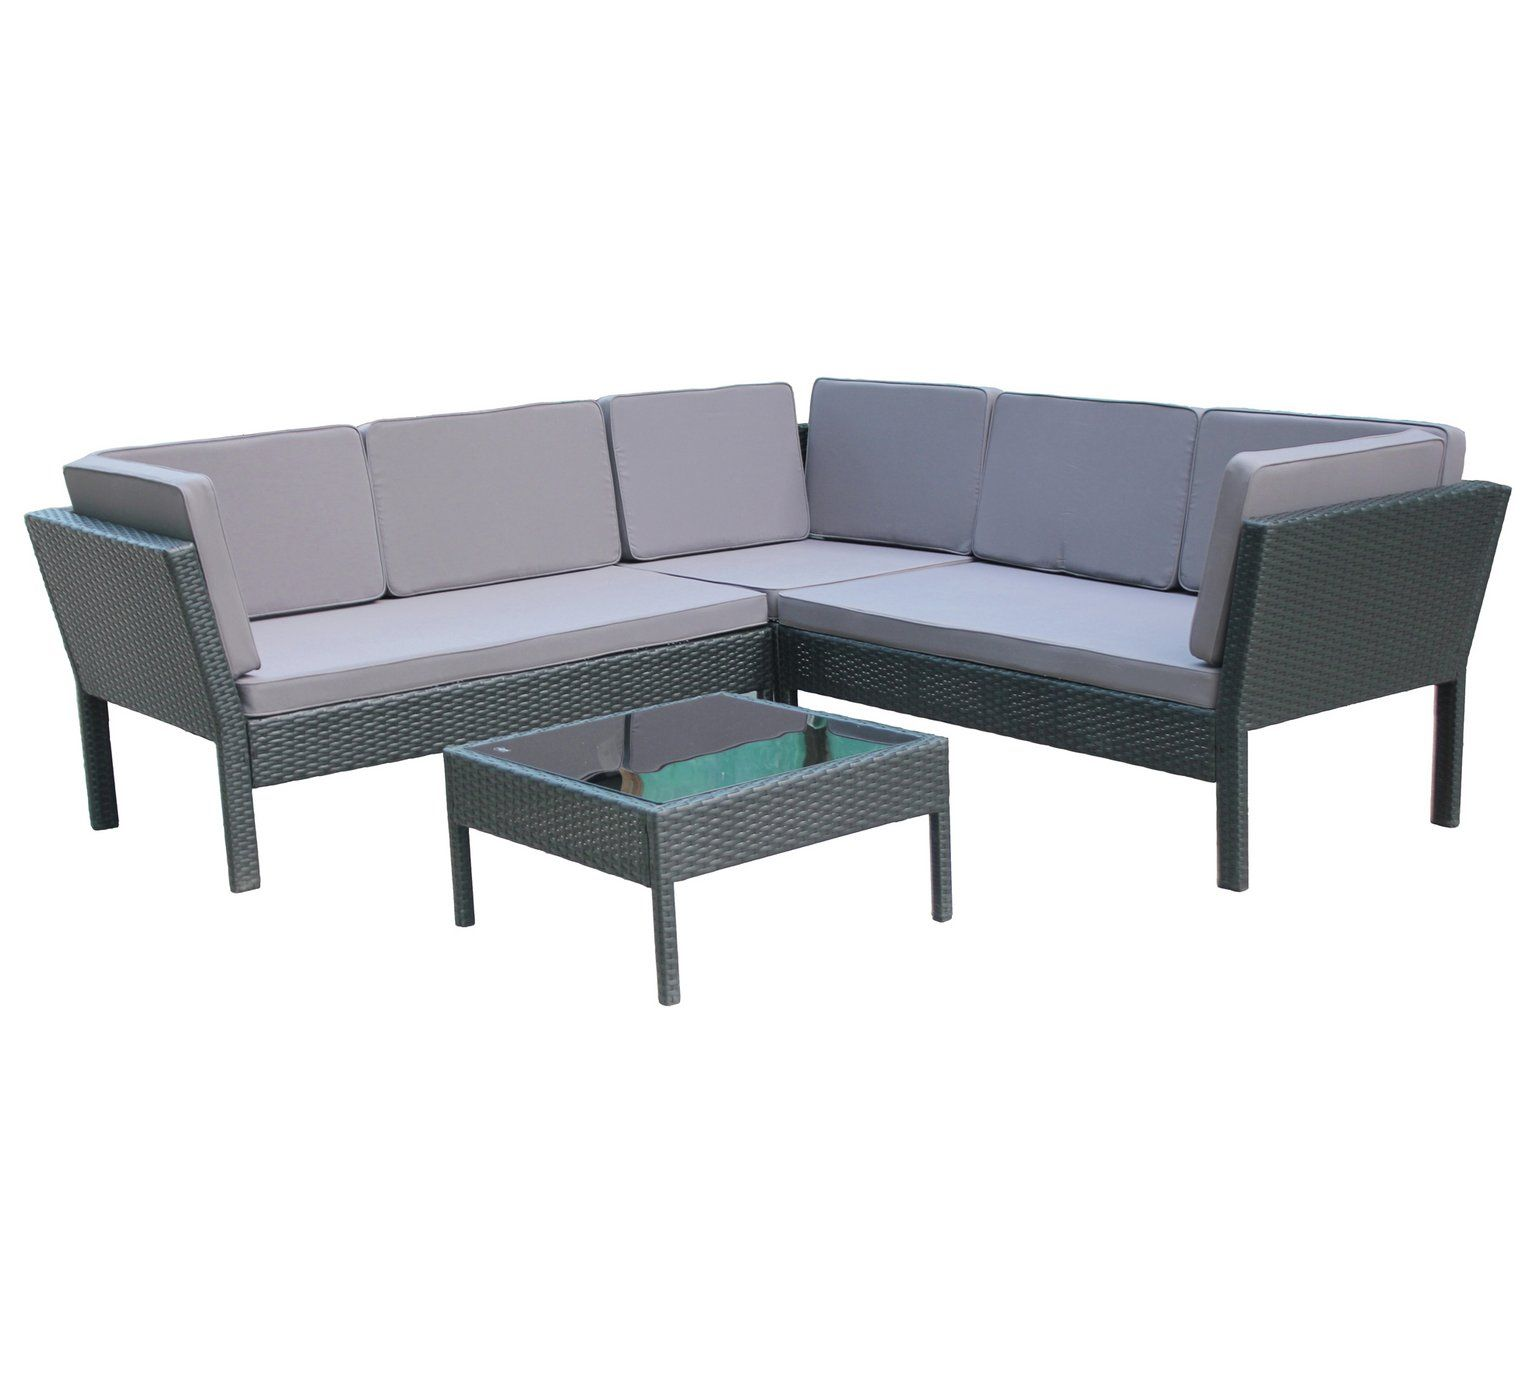 Buy Ratten Effect Corner Sofa Black At Argos Co Uk Your Online Shop For Garden Table And Chair Sets Garden Furniture Corner Sofa Sofa Black Sofa